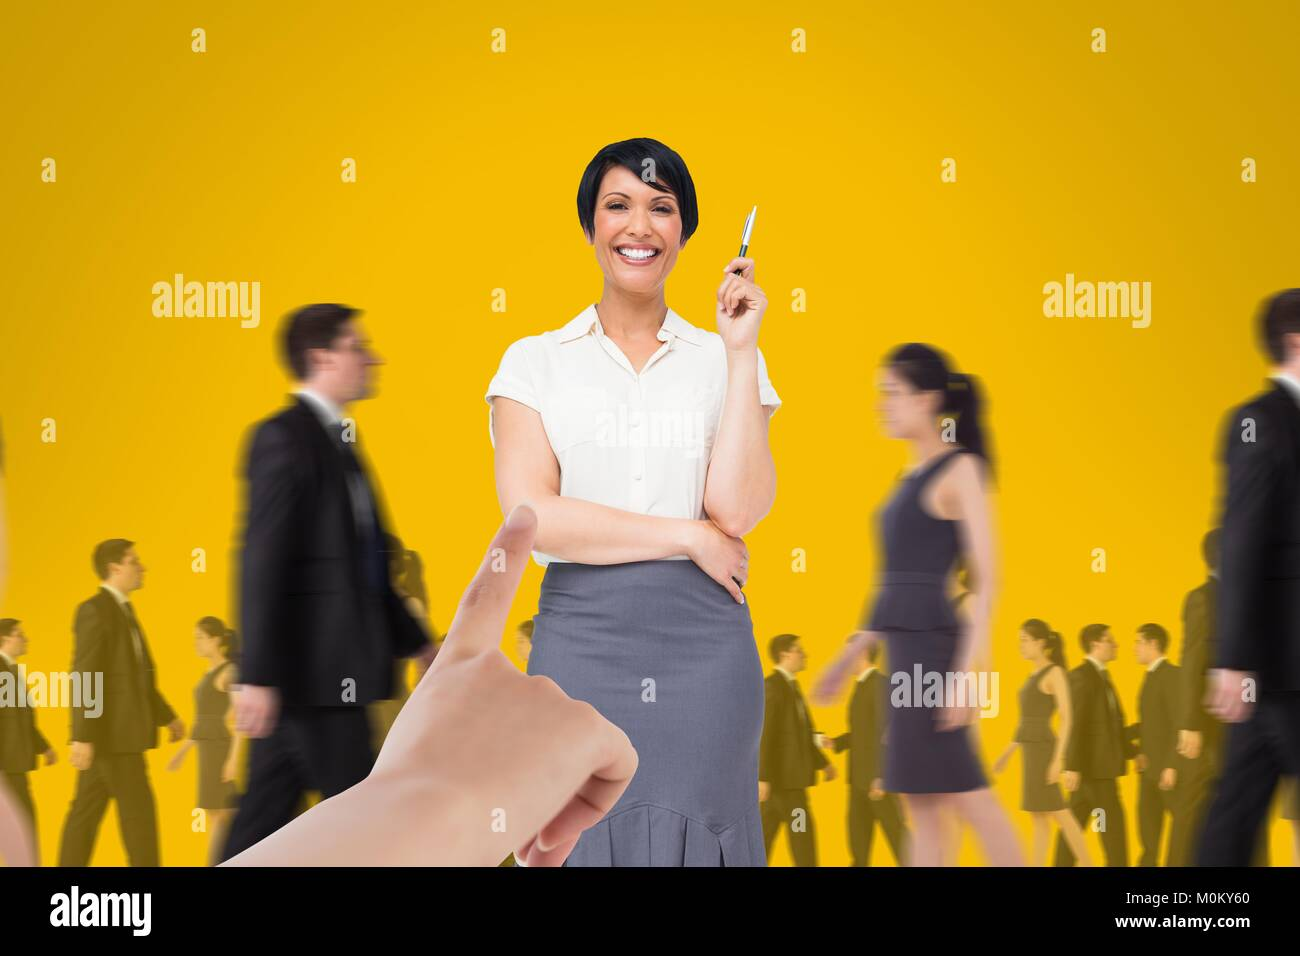 Hand choosing a business woman on yellow background with business people walking Stock Photo